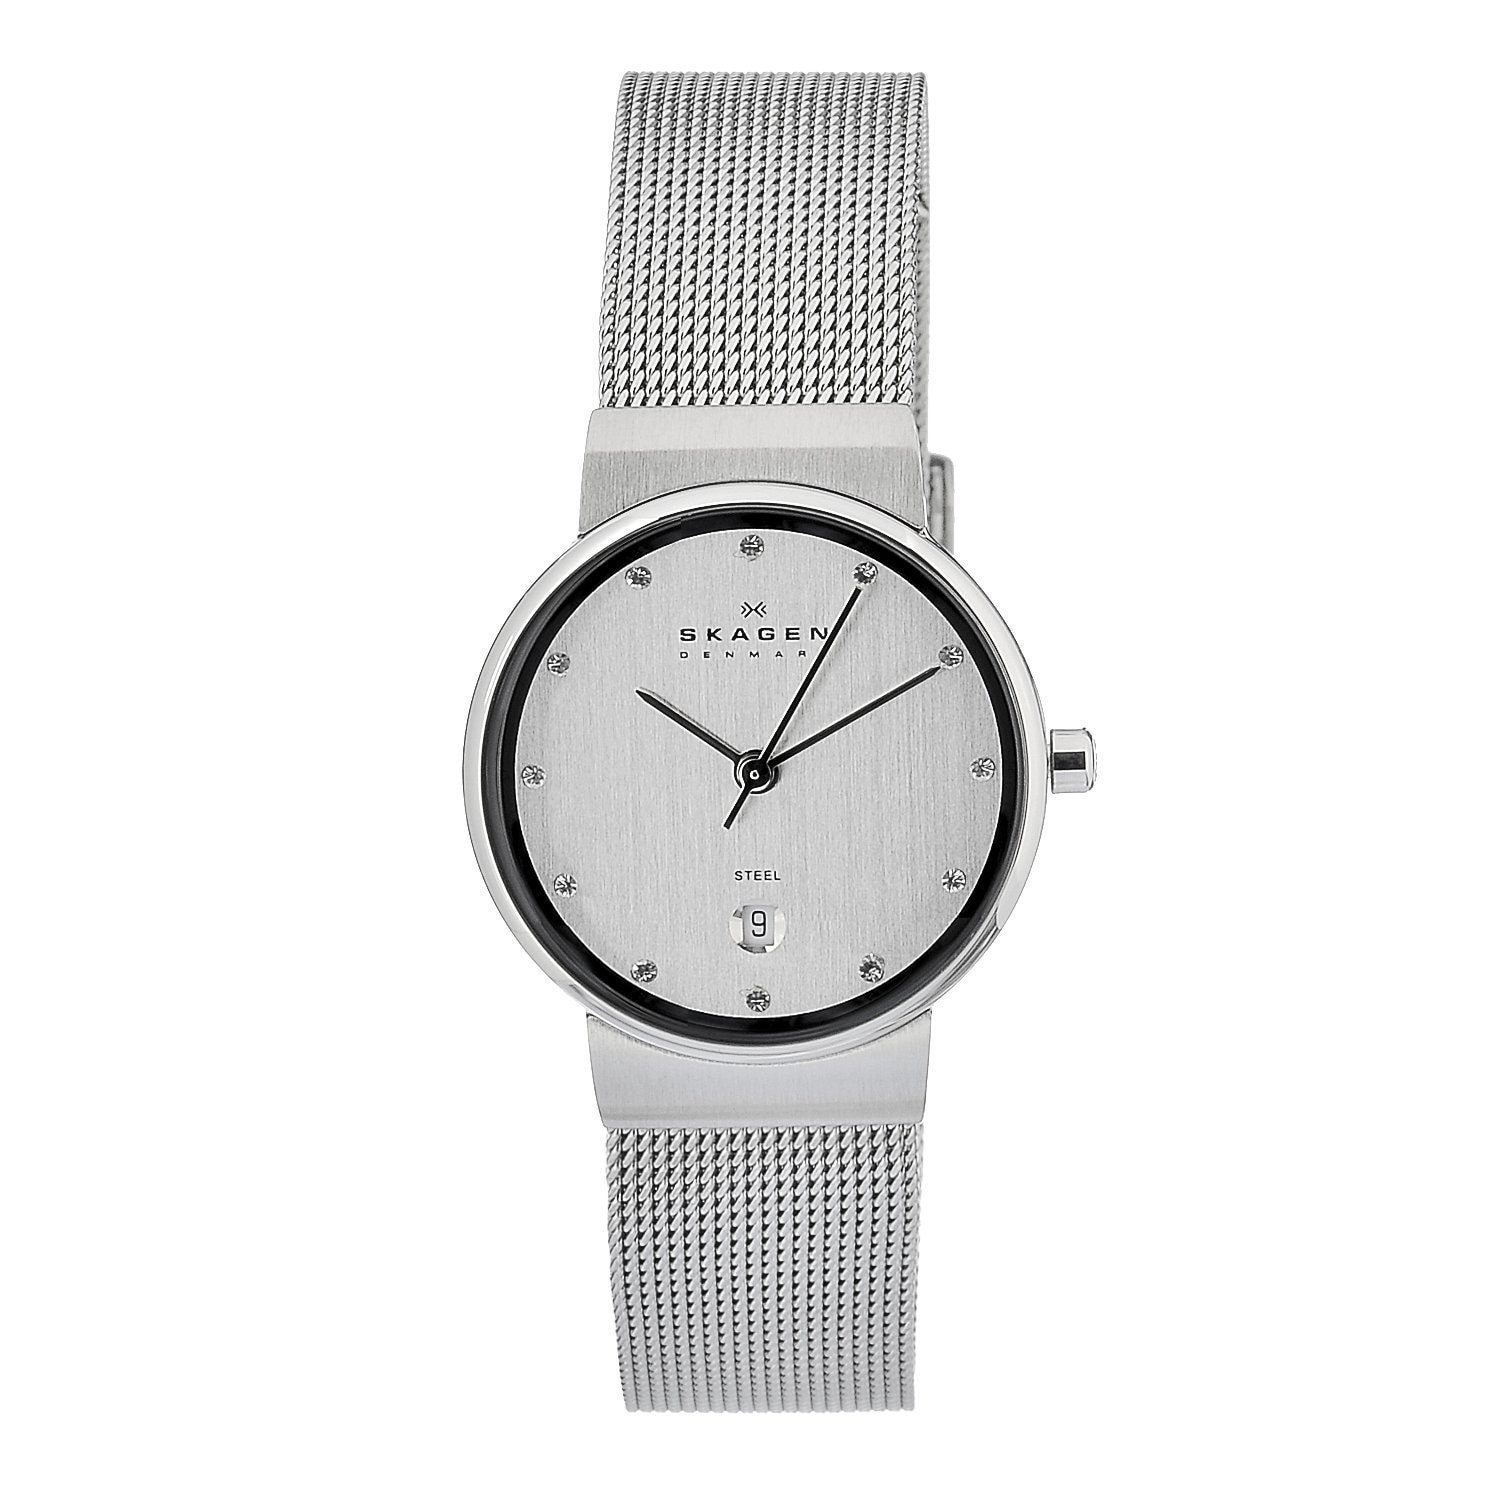 Skagen Women's Water-resistant Stainless Steel Quartz Watch